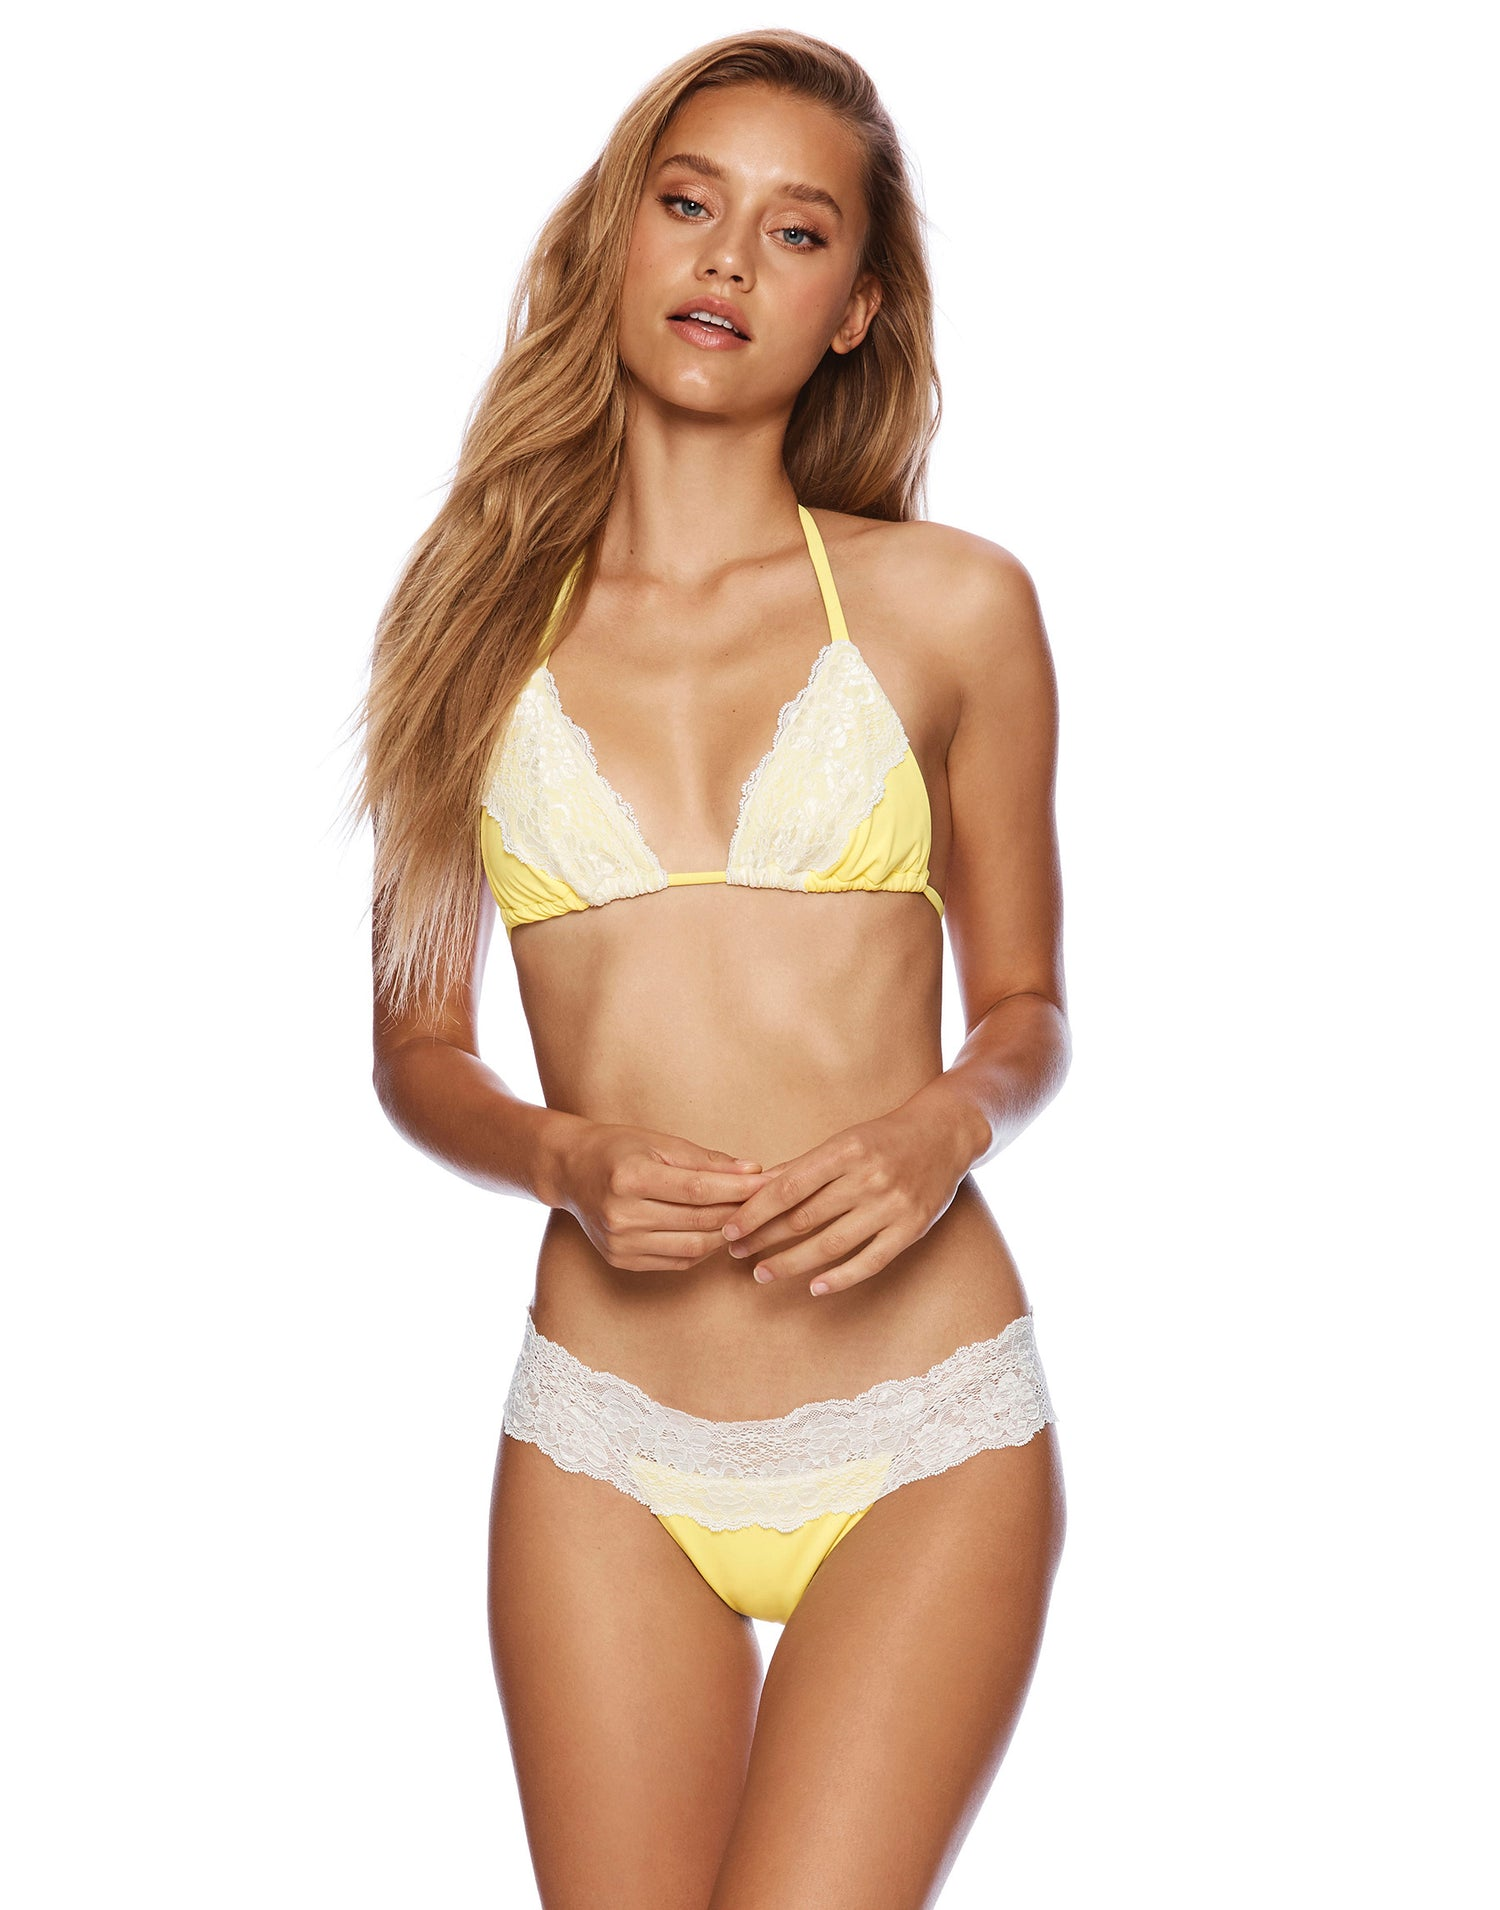 Lady Lace Triangle Bikini Top in Lemon Yellow - front view